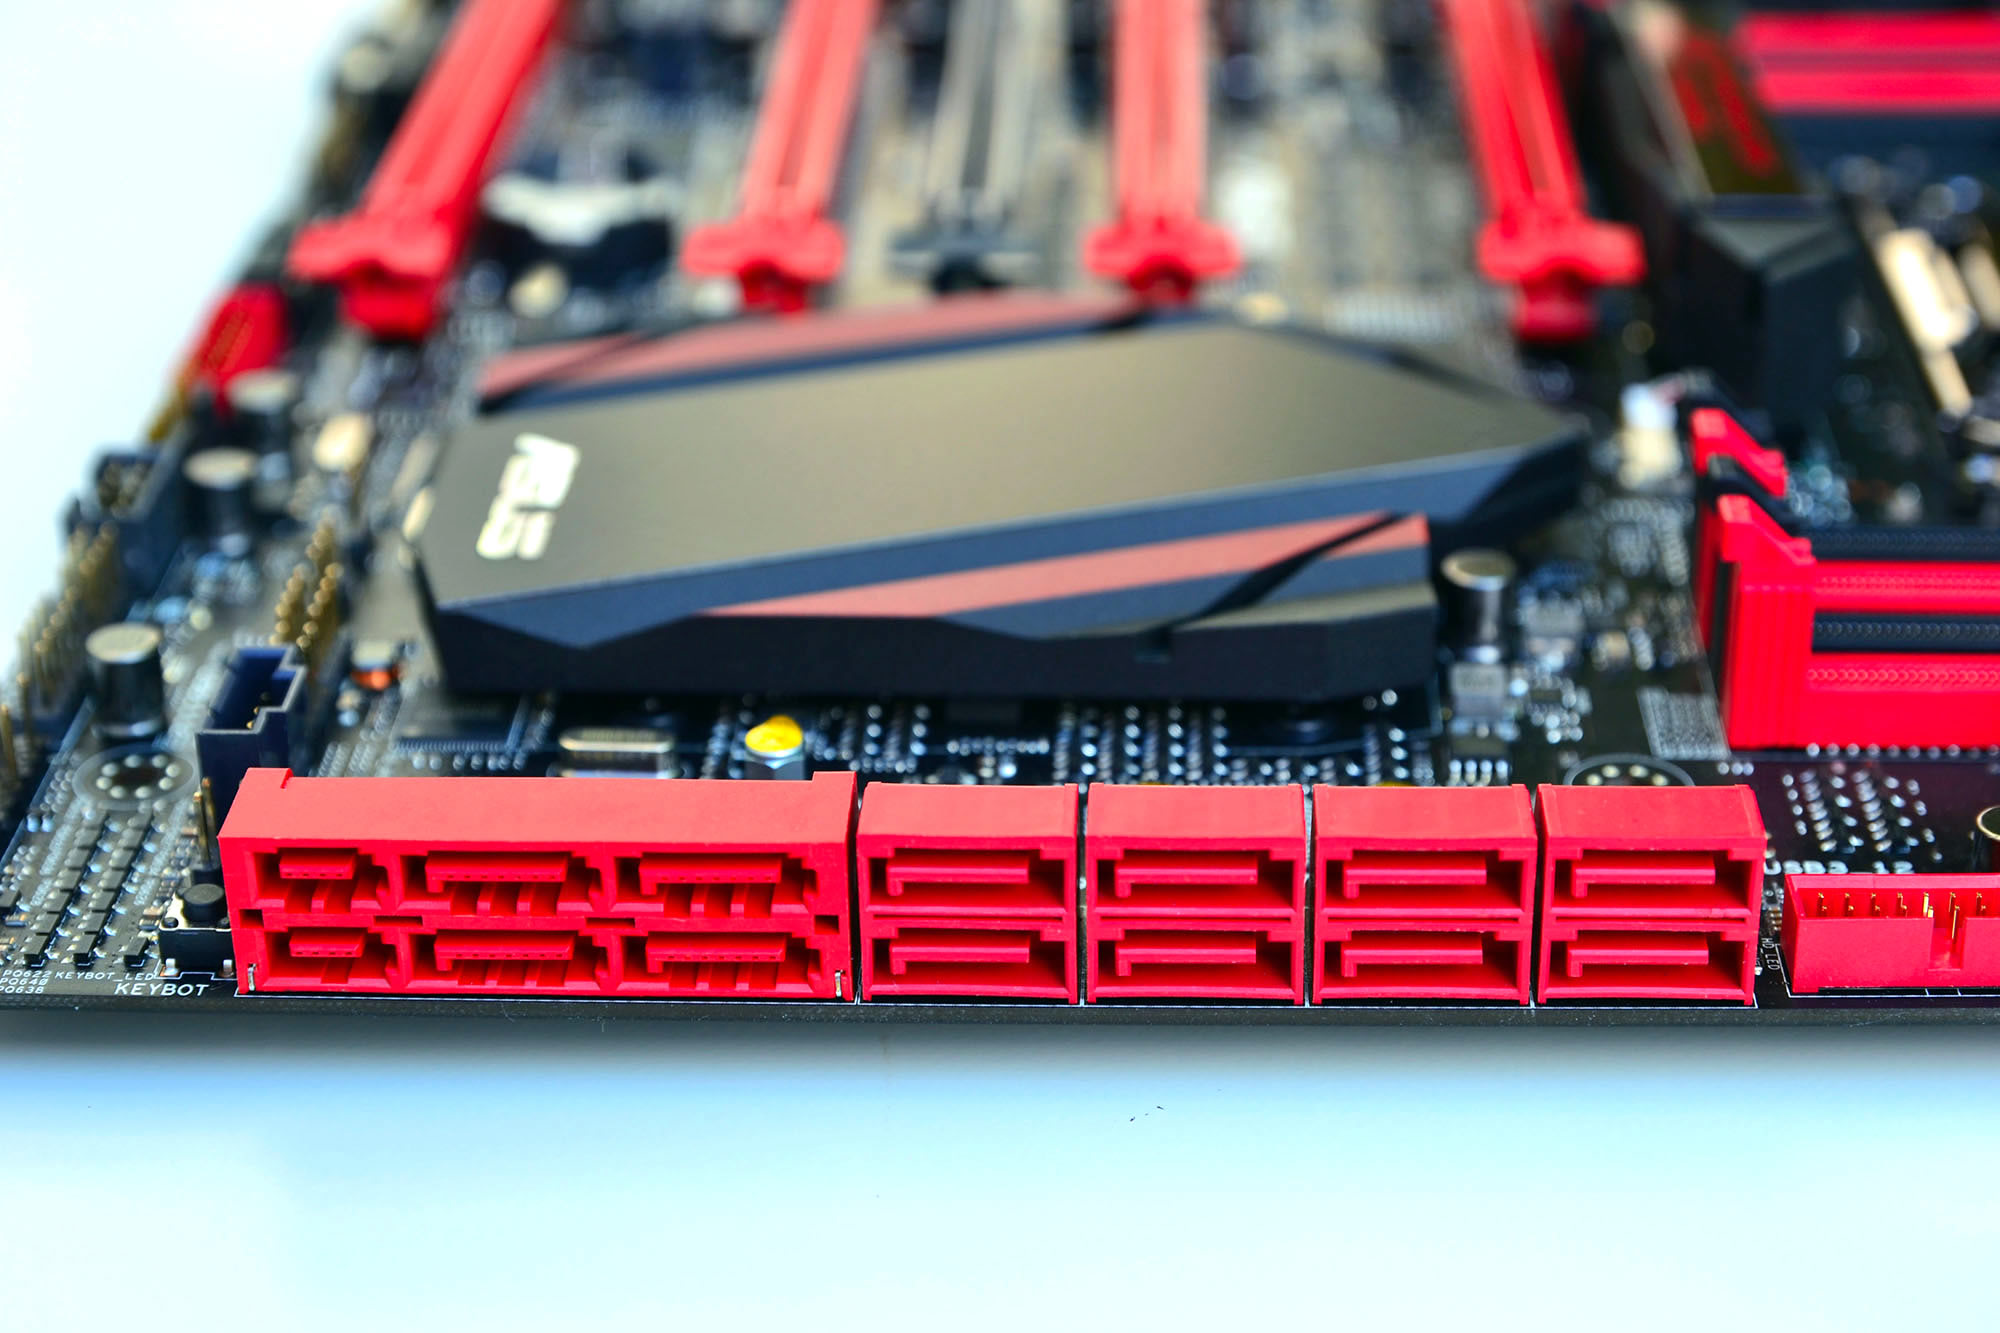 image 24572, galerie Wizerty OC : World Record X99 & ASUS Rampage V Extreme